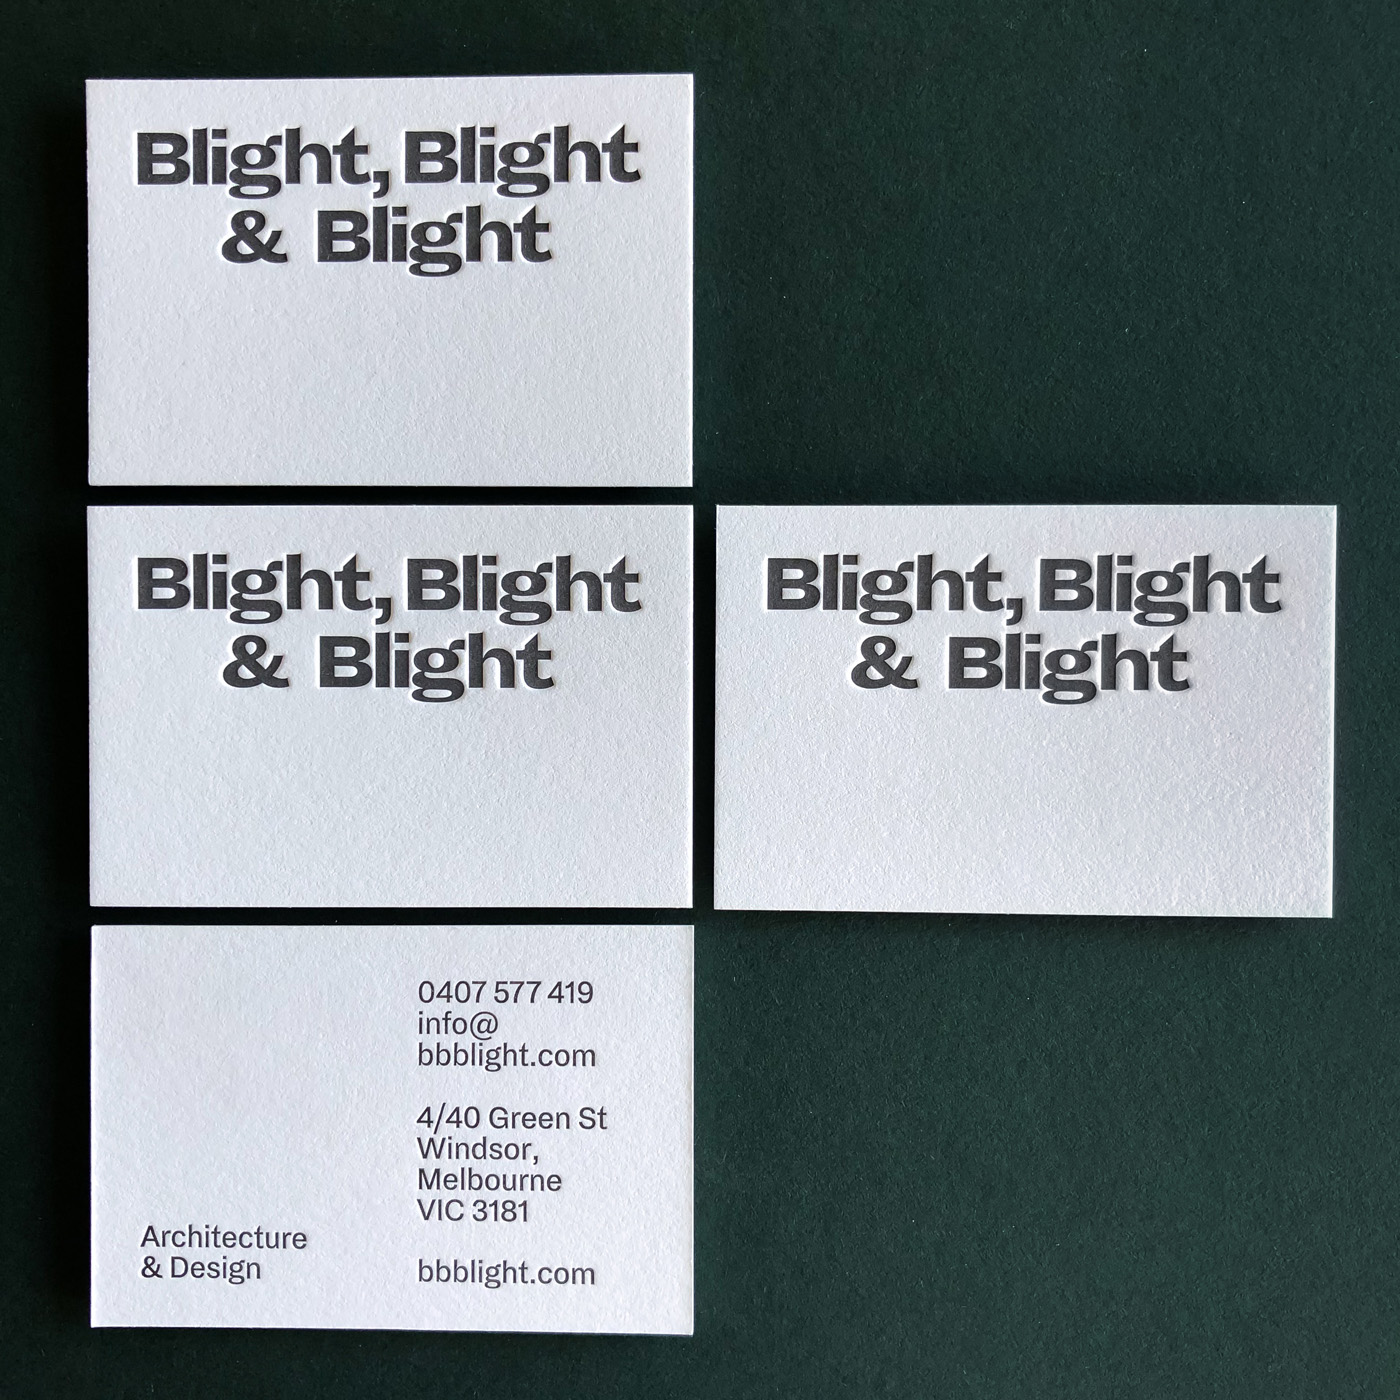 Cotton letterpress business cards for Blight, Blight & Blight on Crane Lettra 2